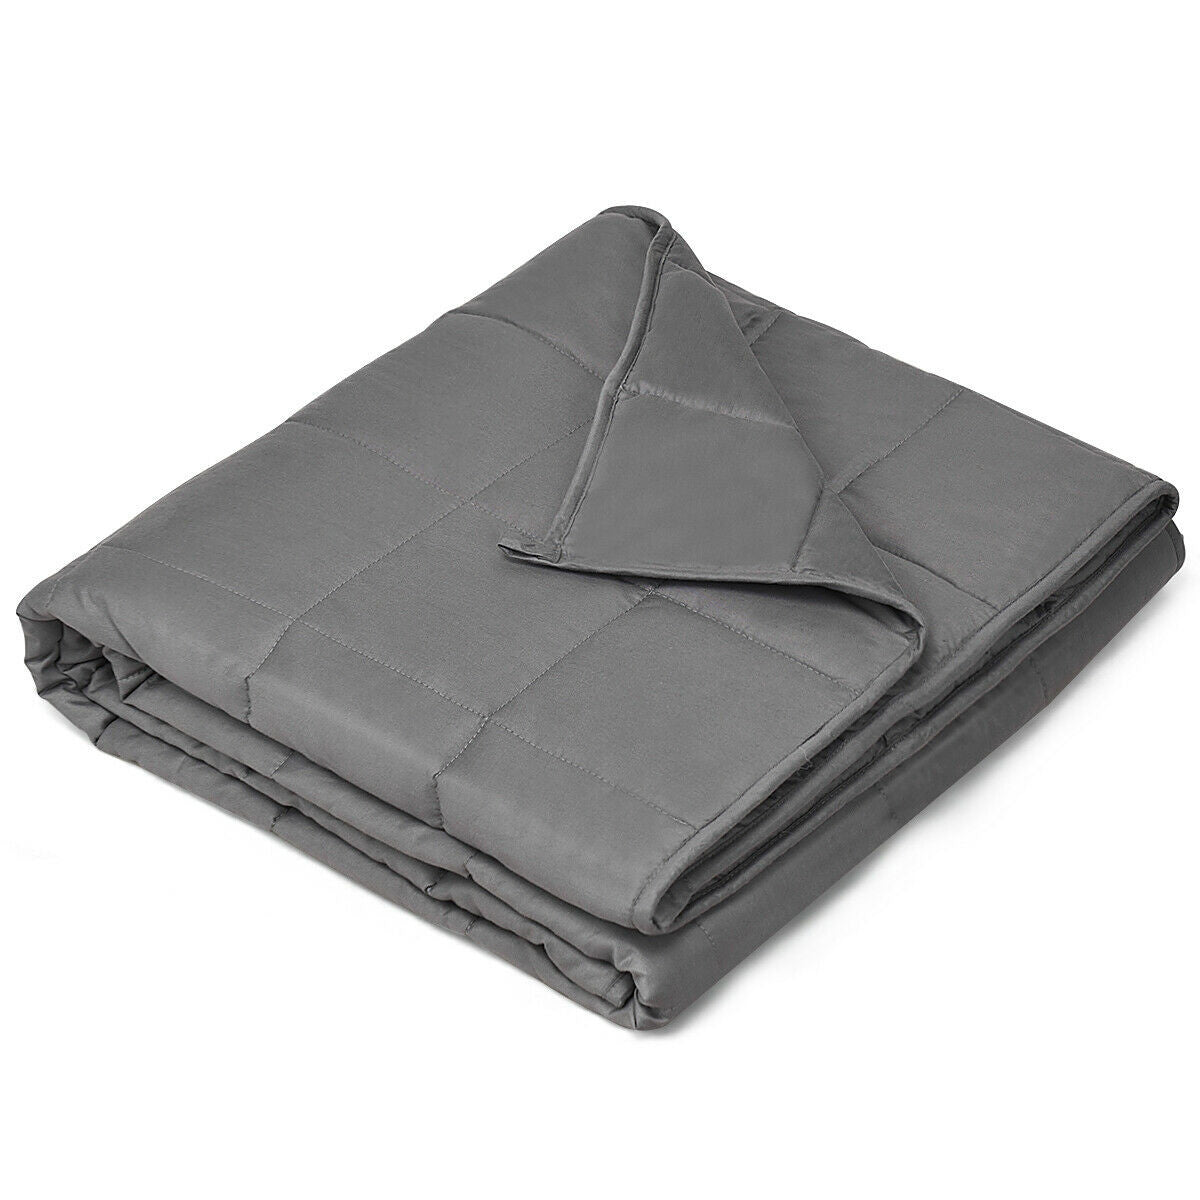 22 lbs Weighted Blankets 100% Cotton with Glass Beads